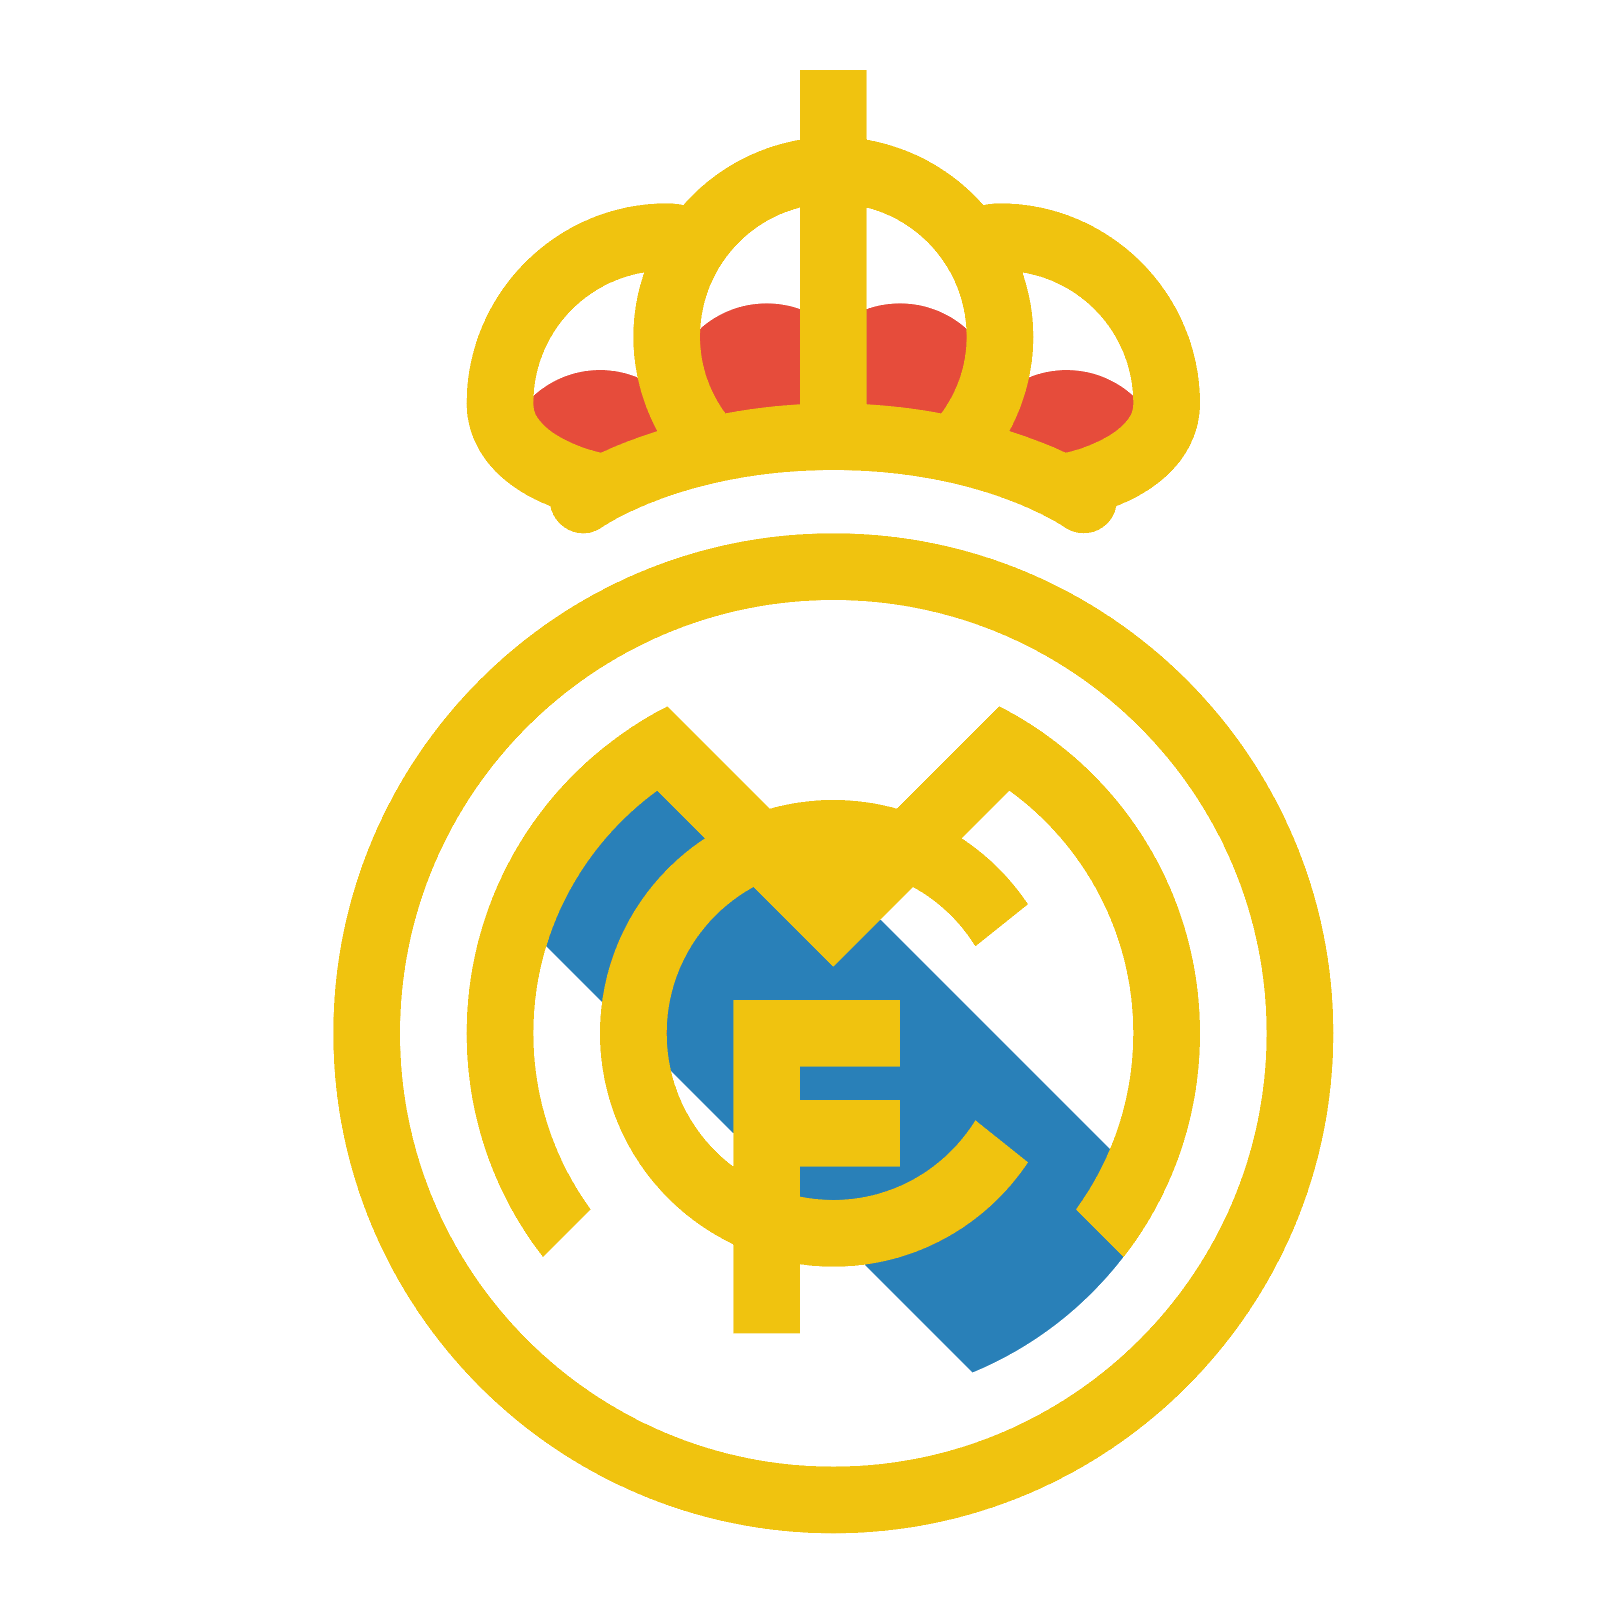 Real madrid logo png. Icon clipart